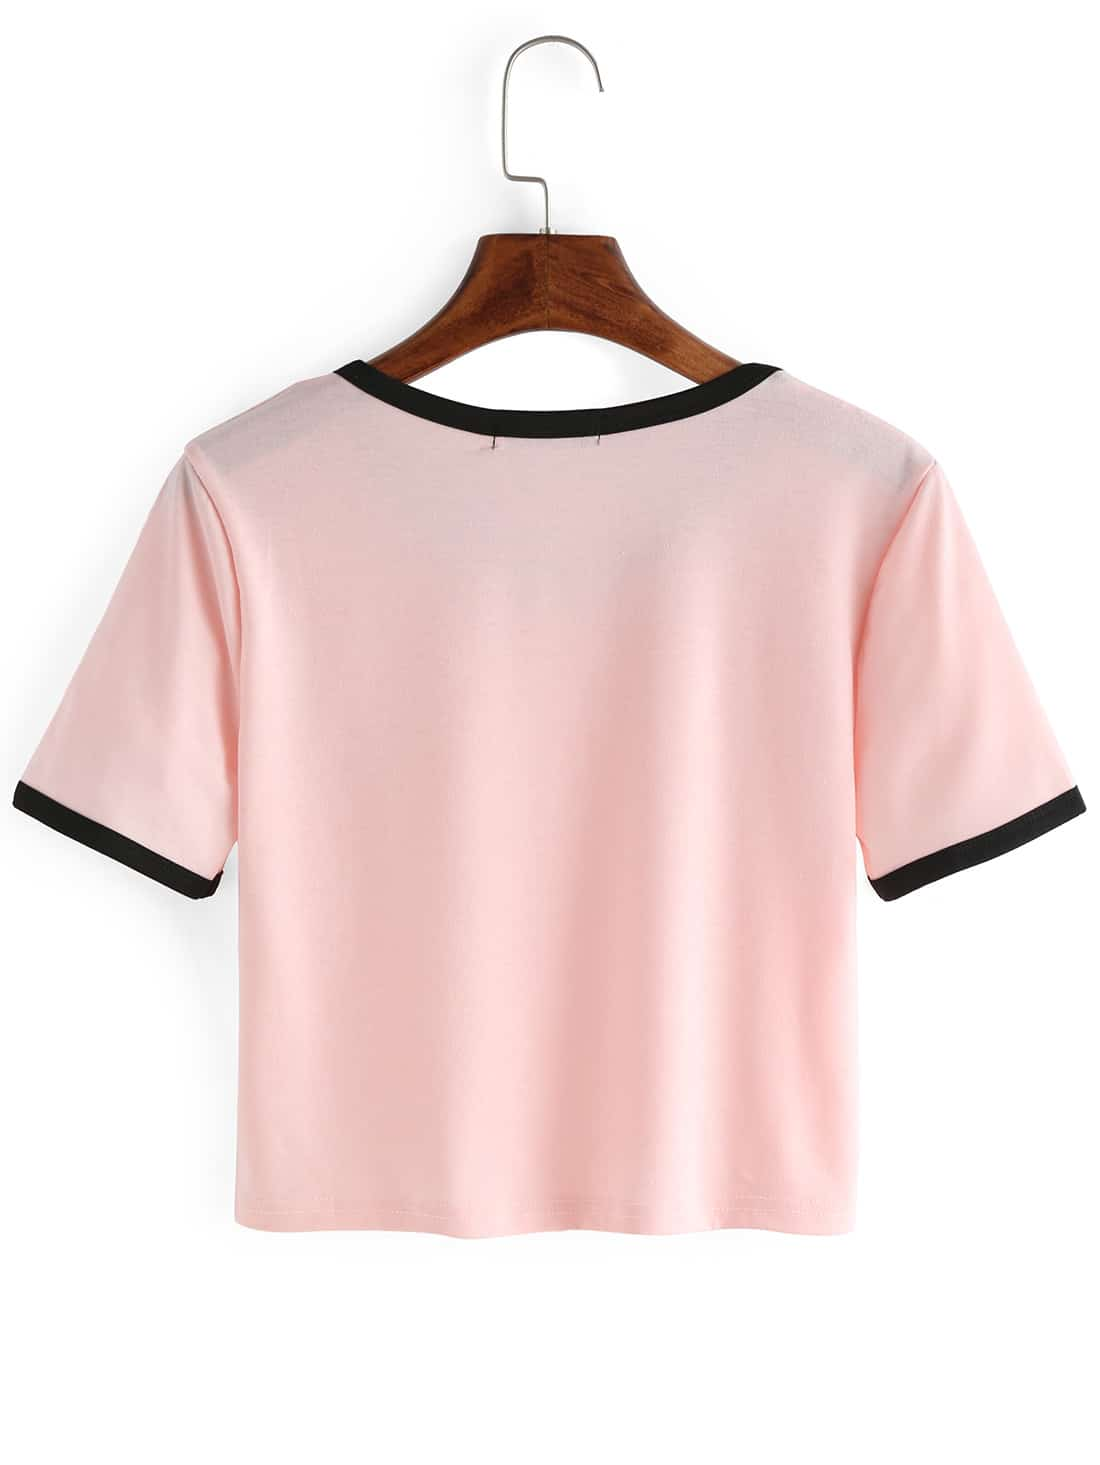 how to make an oversized shirt into a crop top